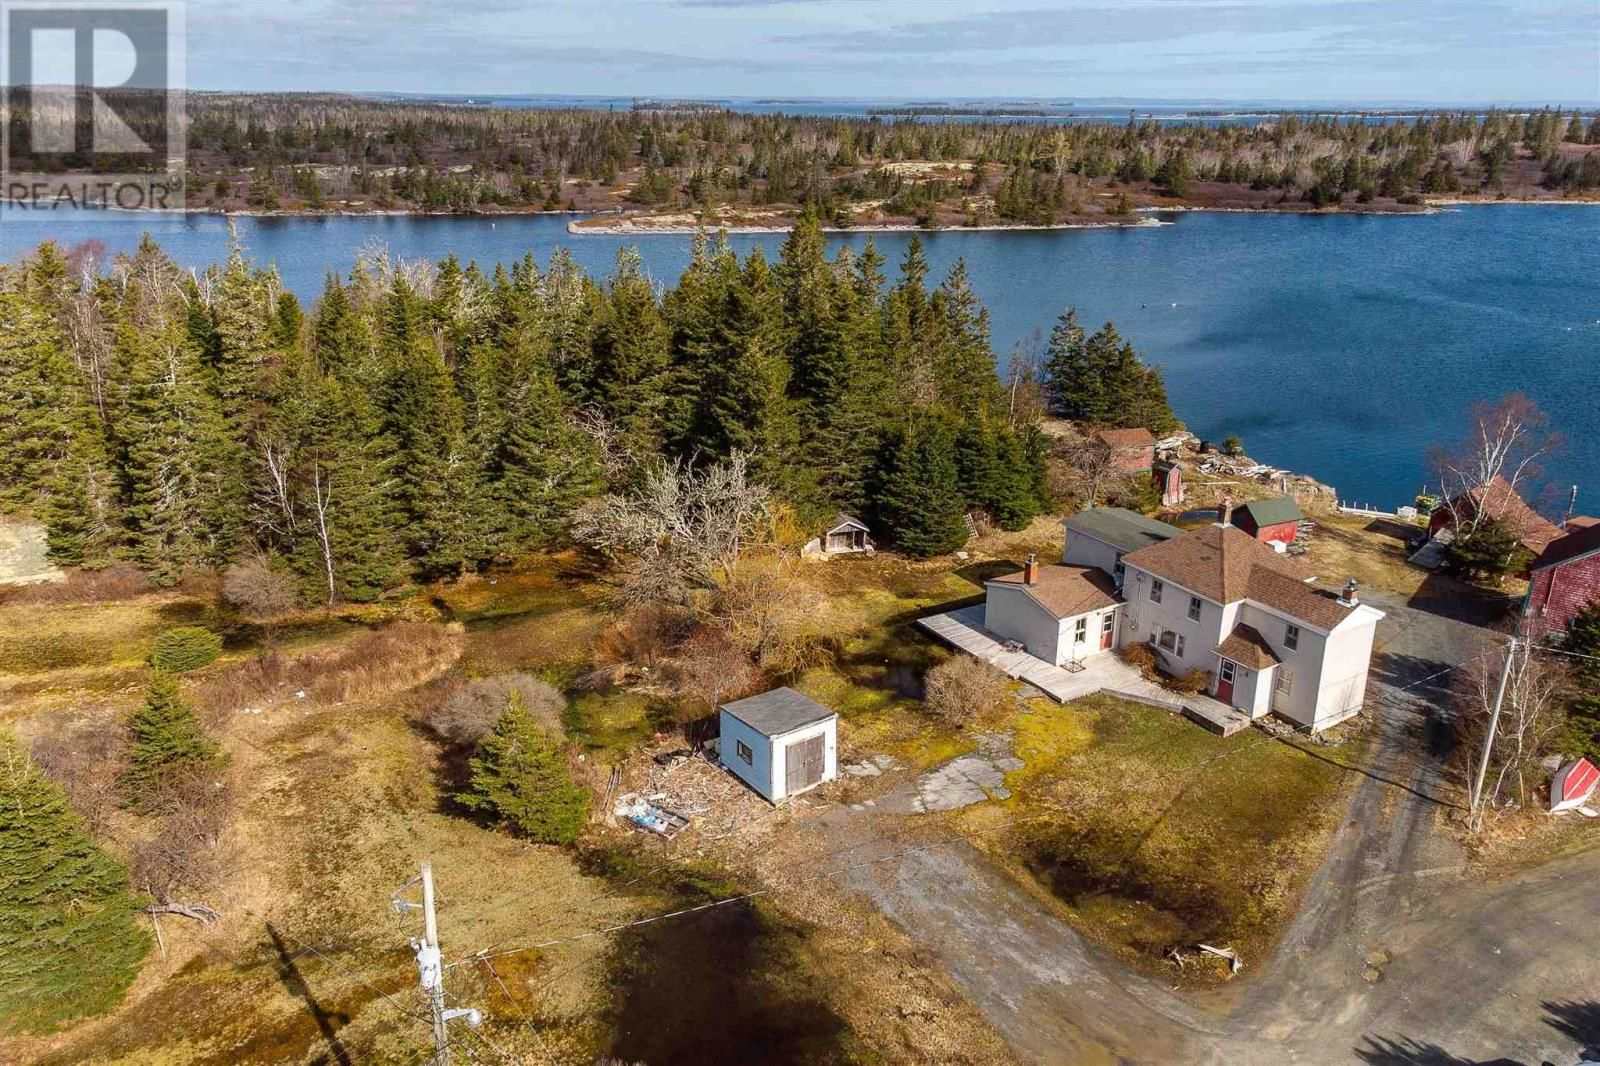 Main Photo: 29 Tanner Road in Stonehurst North: House for sale : MLS®# 202107673